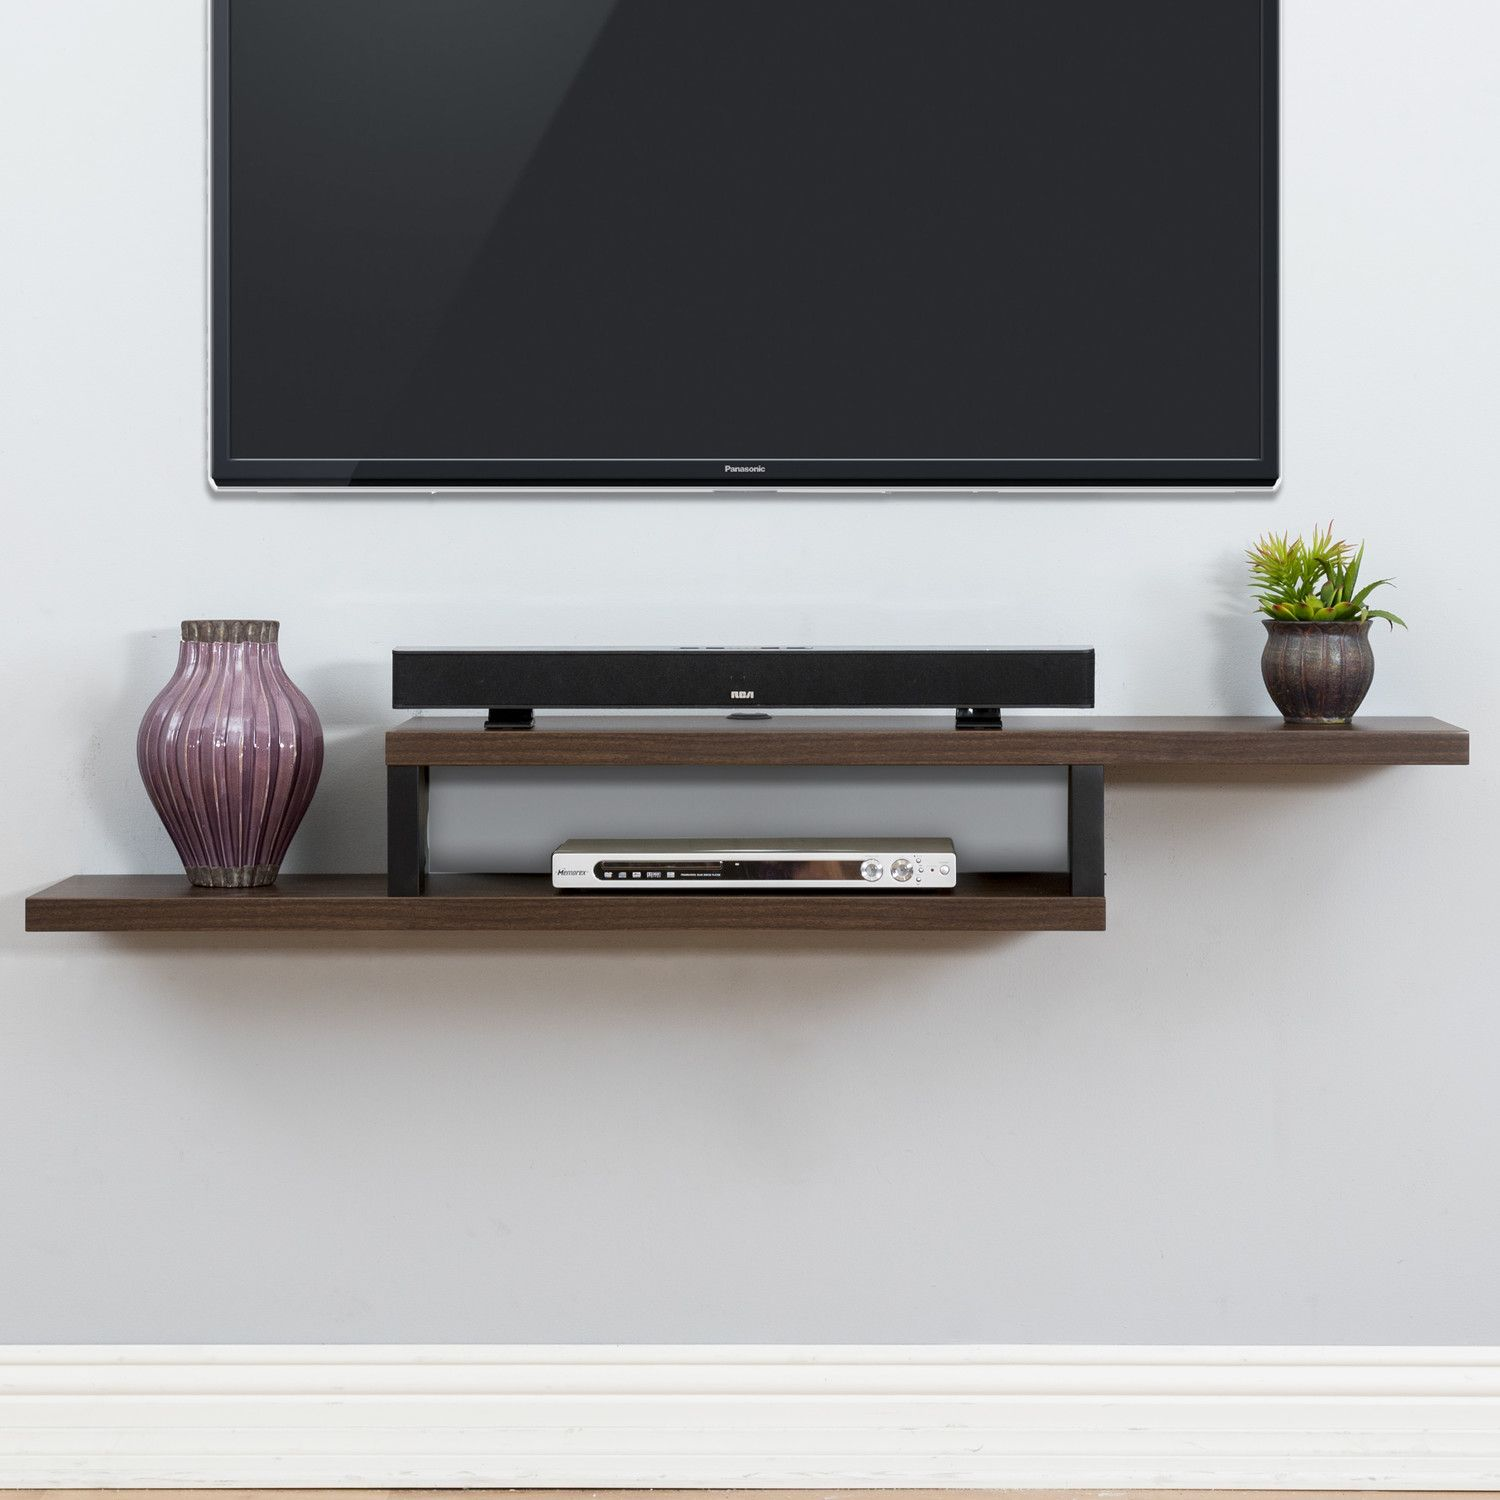 Tv Wall Mount Style Ideas To Combine With Your Attractive And Rh Pinterest Com Shelf For Cable Box Shelving